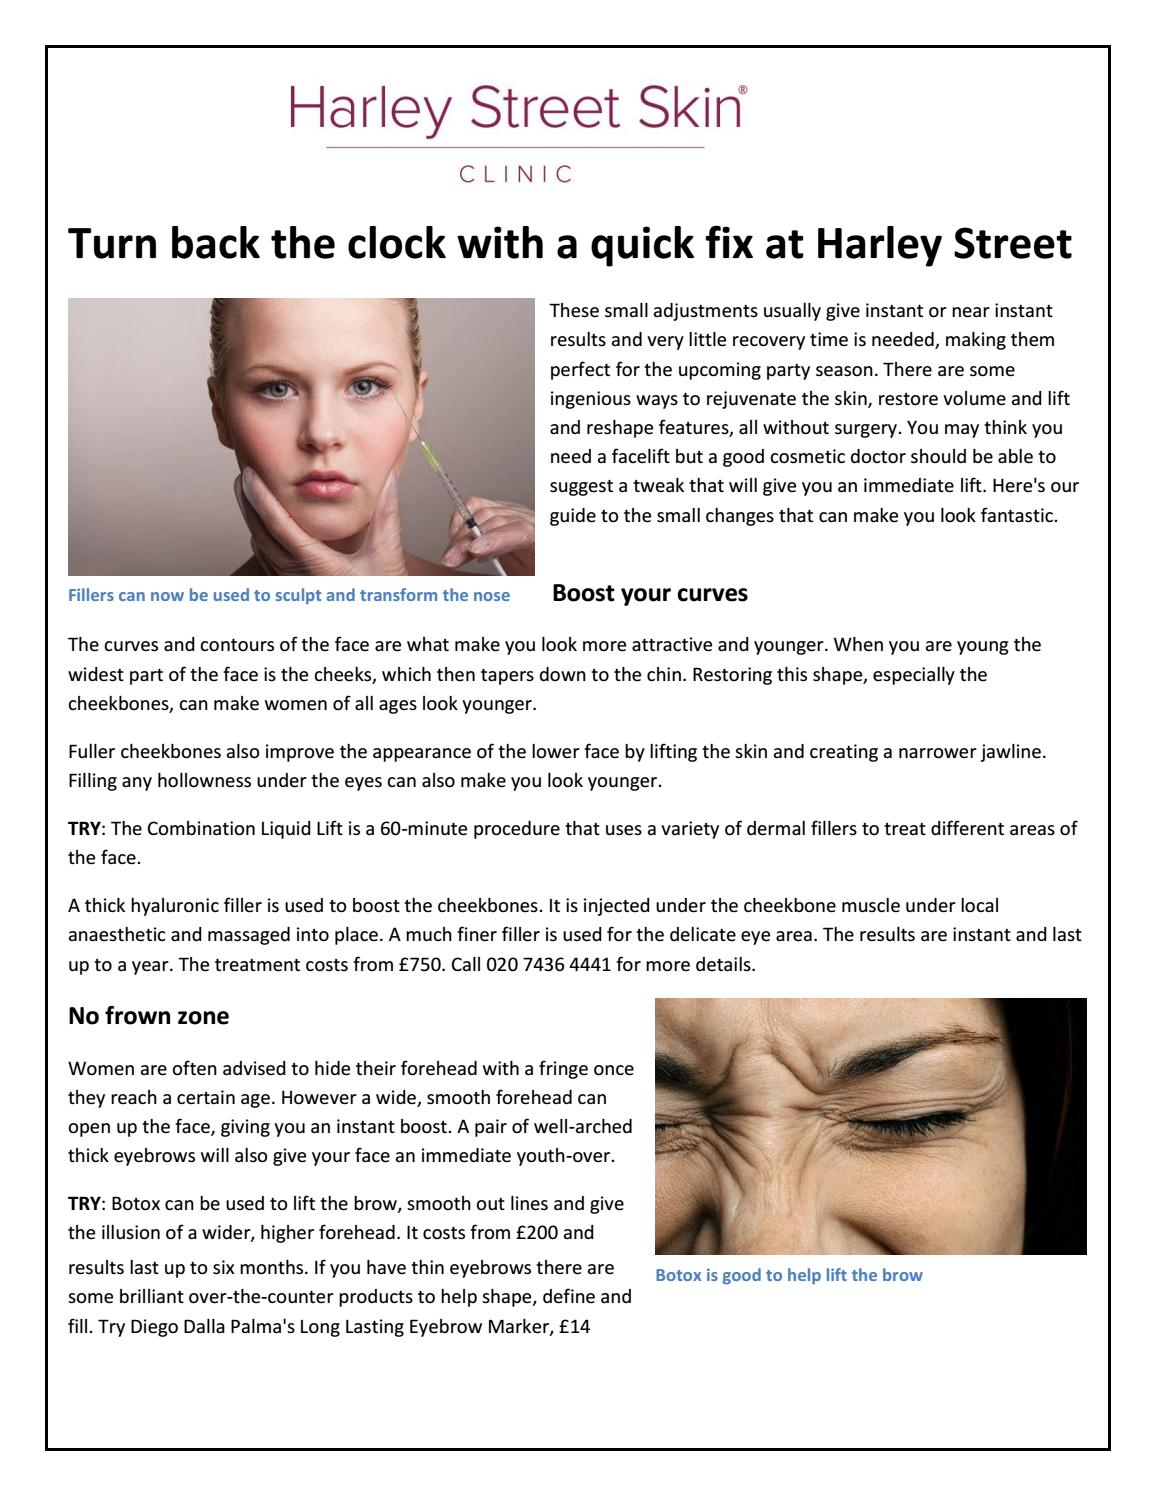 Turn back the clock with a quick fix at harley street skin